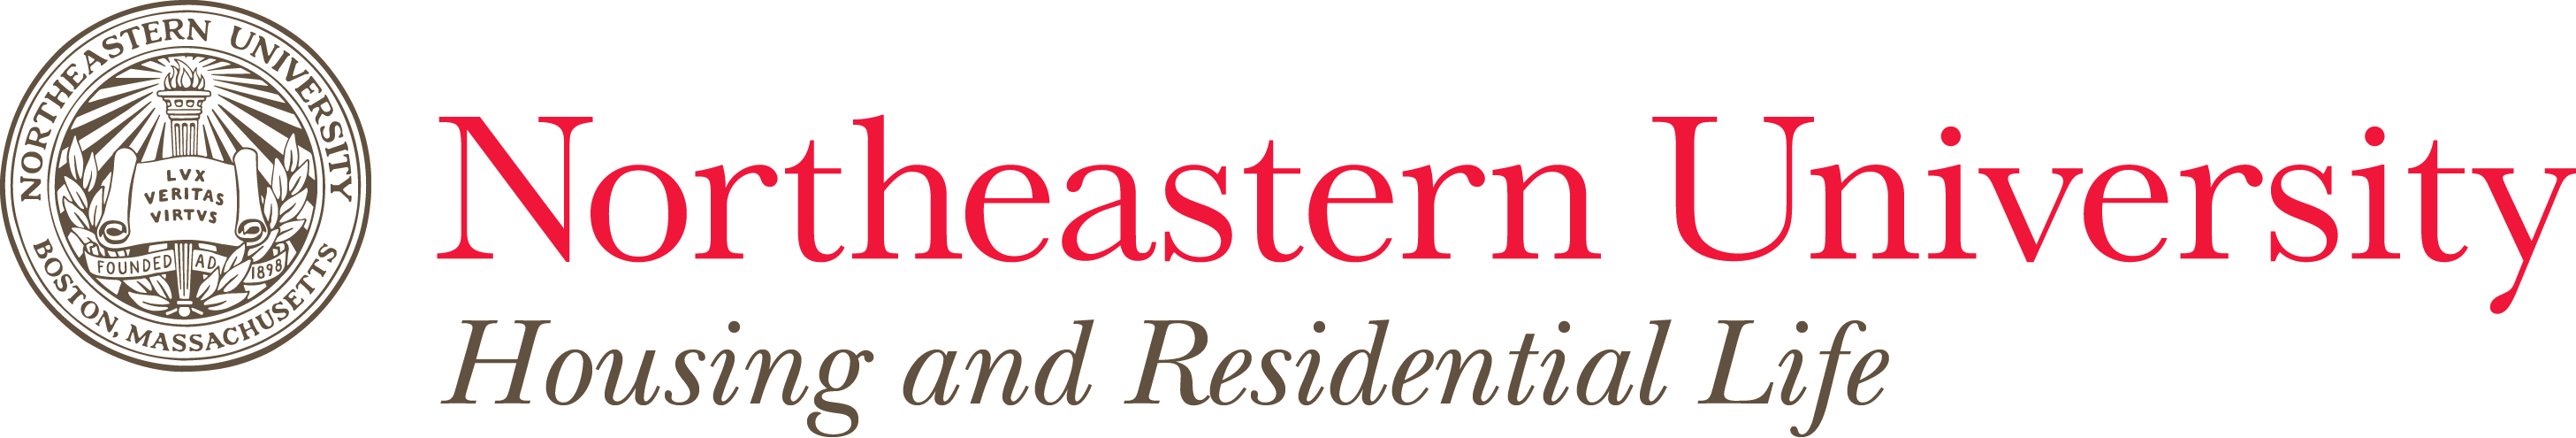 Housing-ResLife_Logo_2c